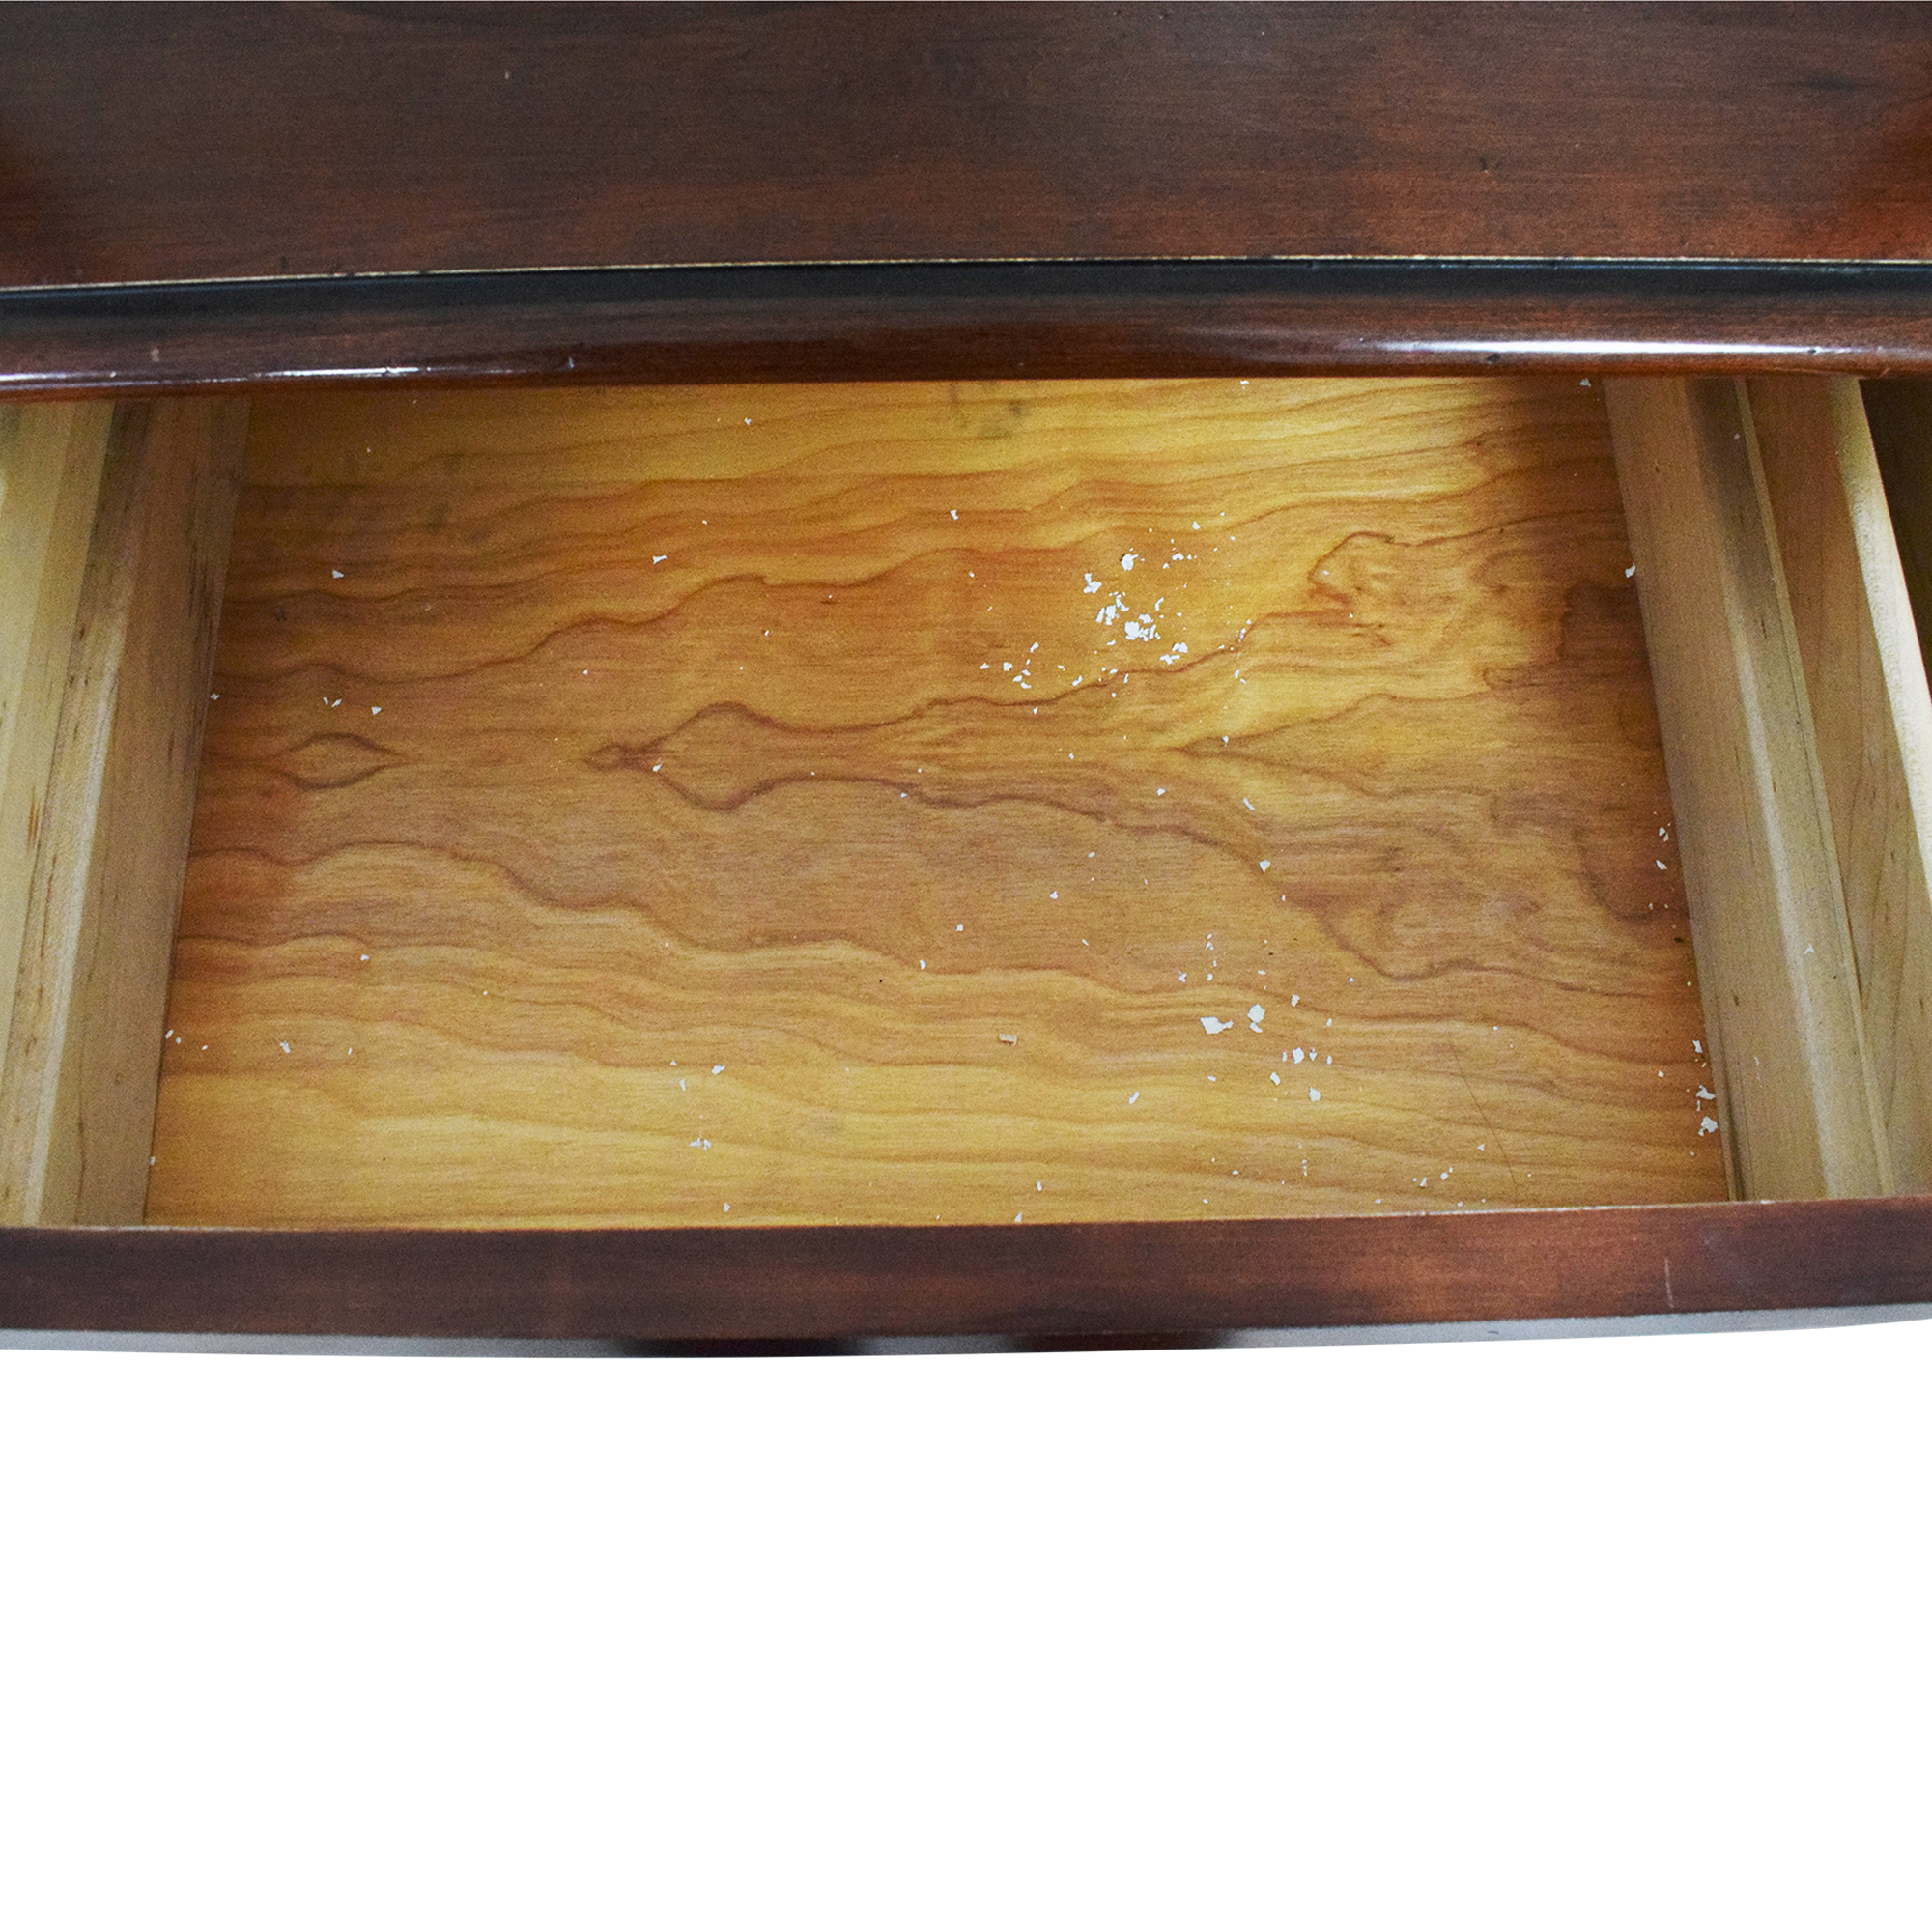 Ethan Allen Ethan Allen British Classics Marques Dresser with Mirror coupon